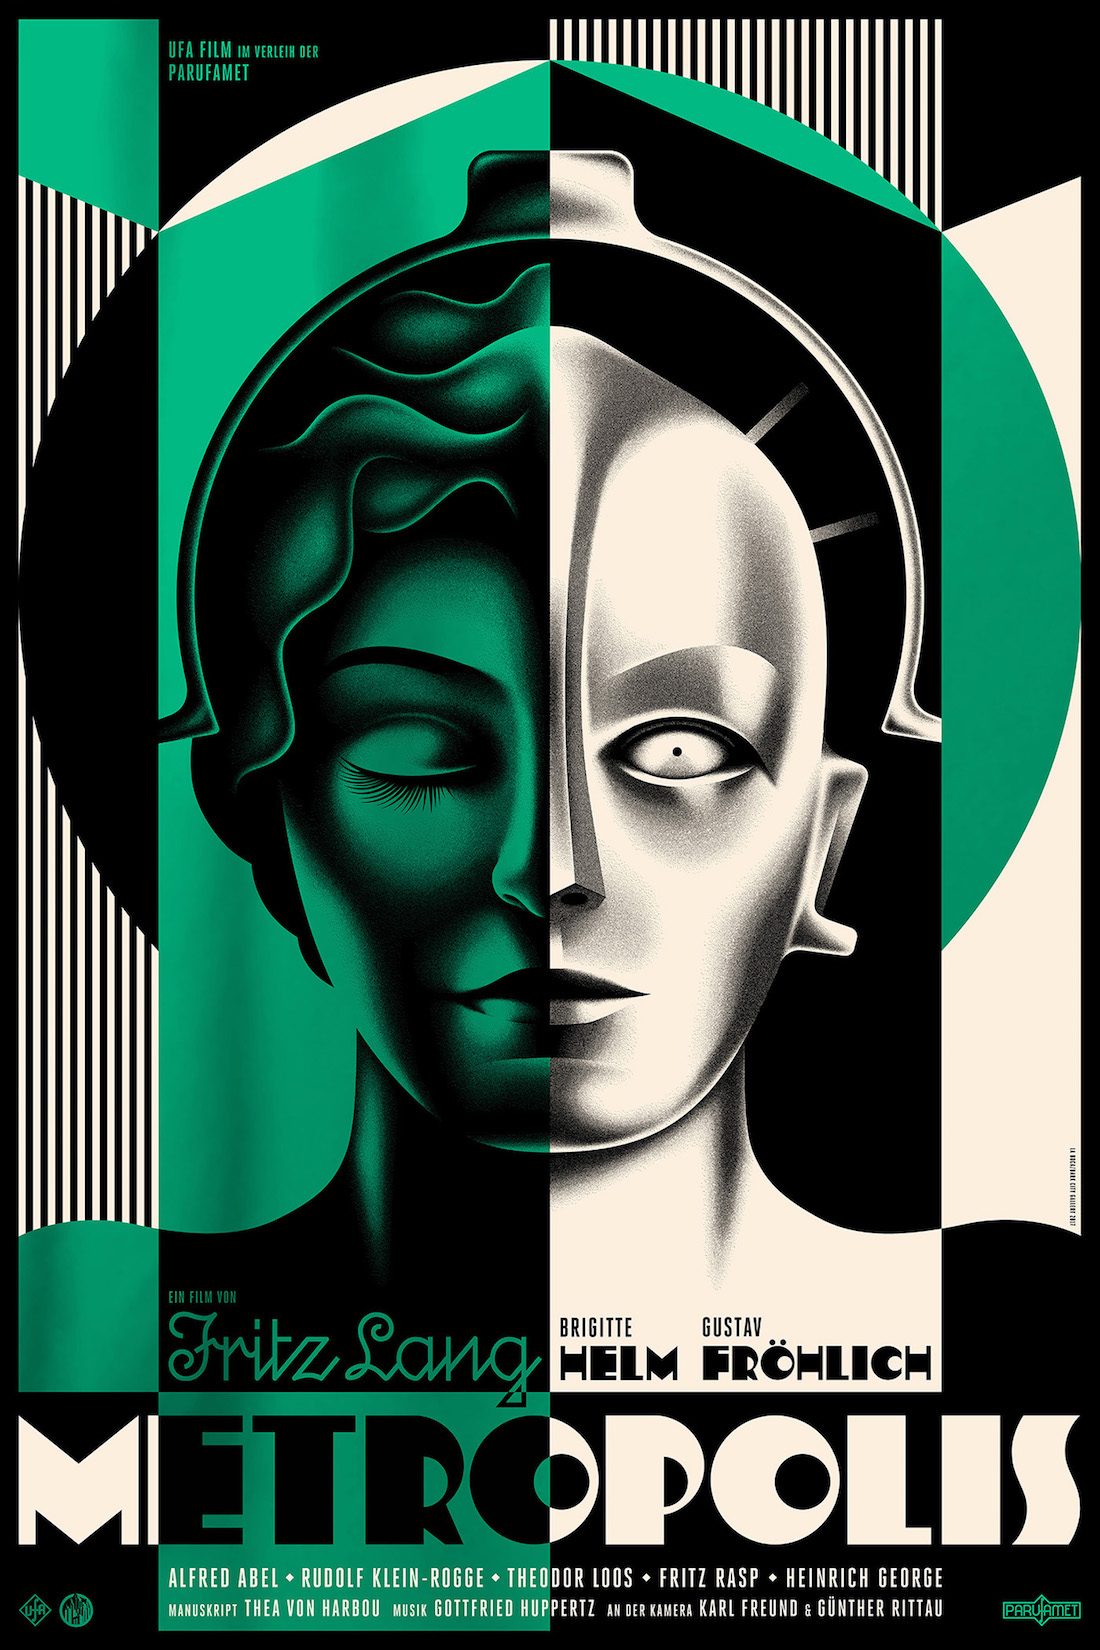 Metropolis poster by La Boca (green version)